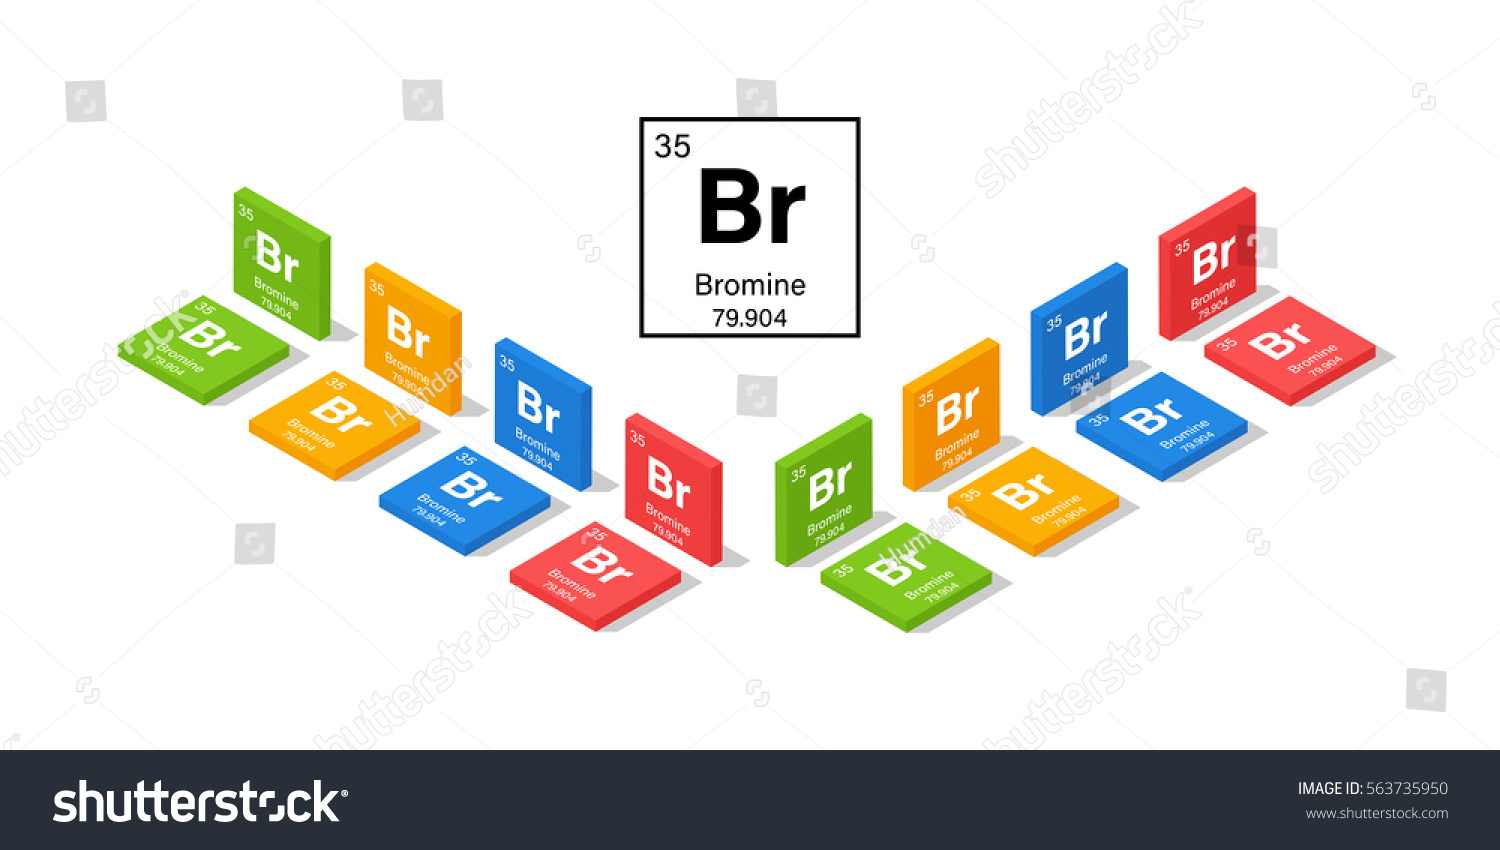 Elements periodic table bromine 3d isometric stock vector elements in the periodic table bromine 3d isometric style vector illustration gamestrikefo Gallery